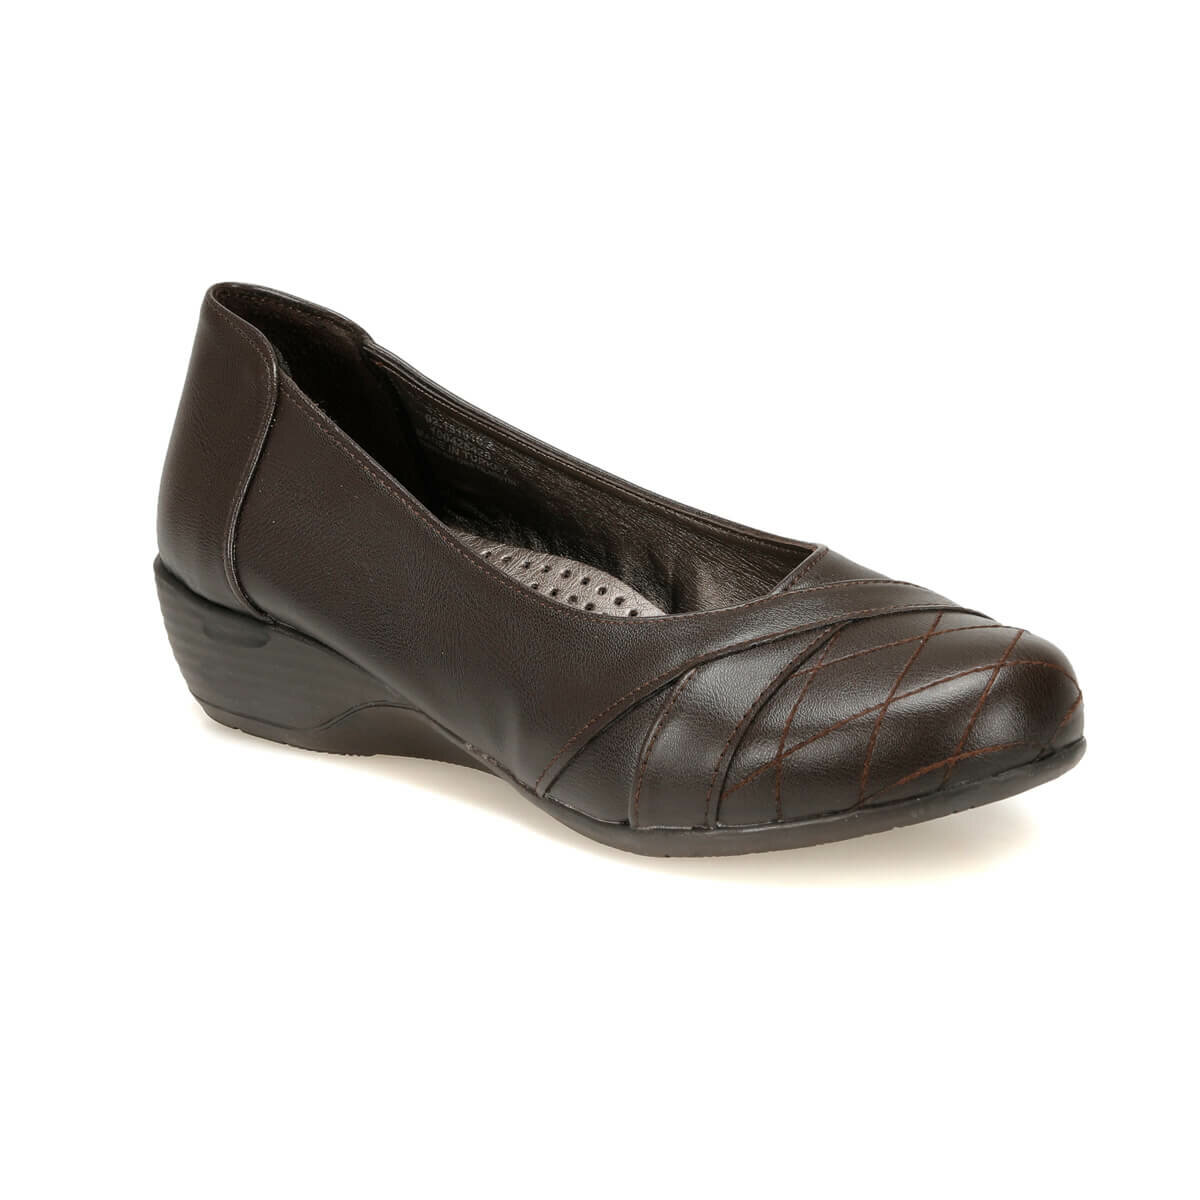 FLO 92.151016.Z Brown Women 'S Wedges Shoes Polaris